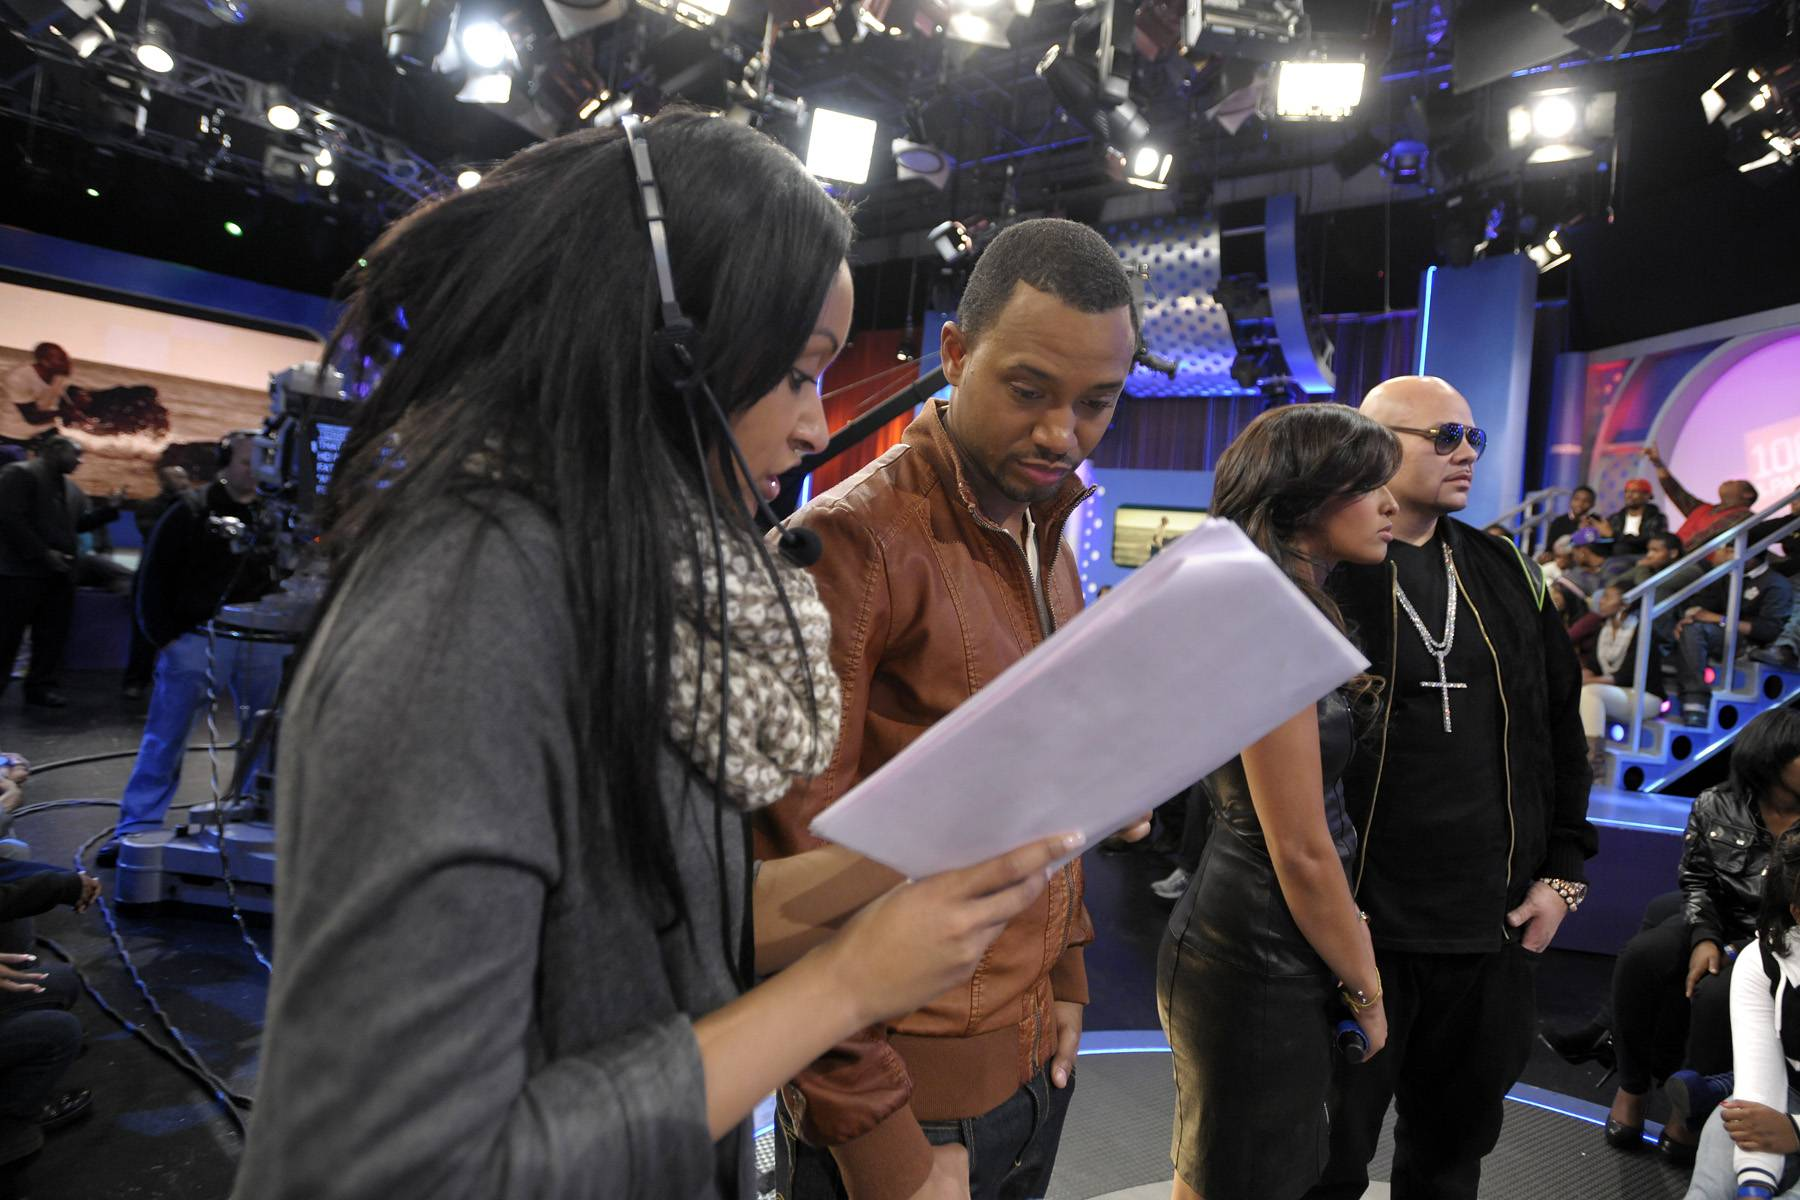 Check This Out - Show producer Stasia reviews notes with Terrence J while Rocsi Diaz and Fat Joe check out Fat Joe's new video at 106 & Park, January 3, 2012. (Photo: John Ricard / BET)